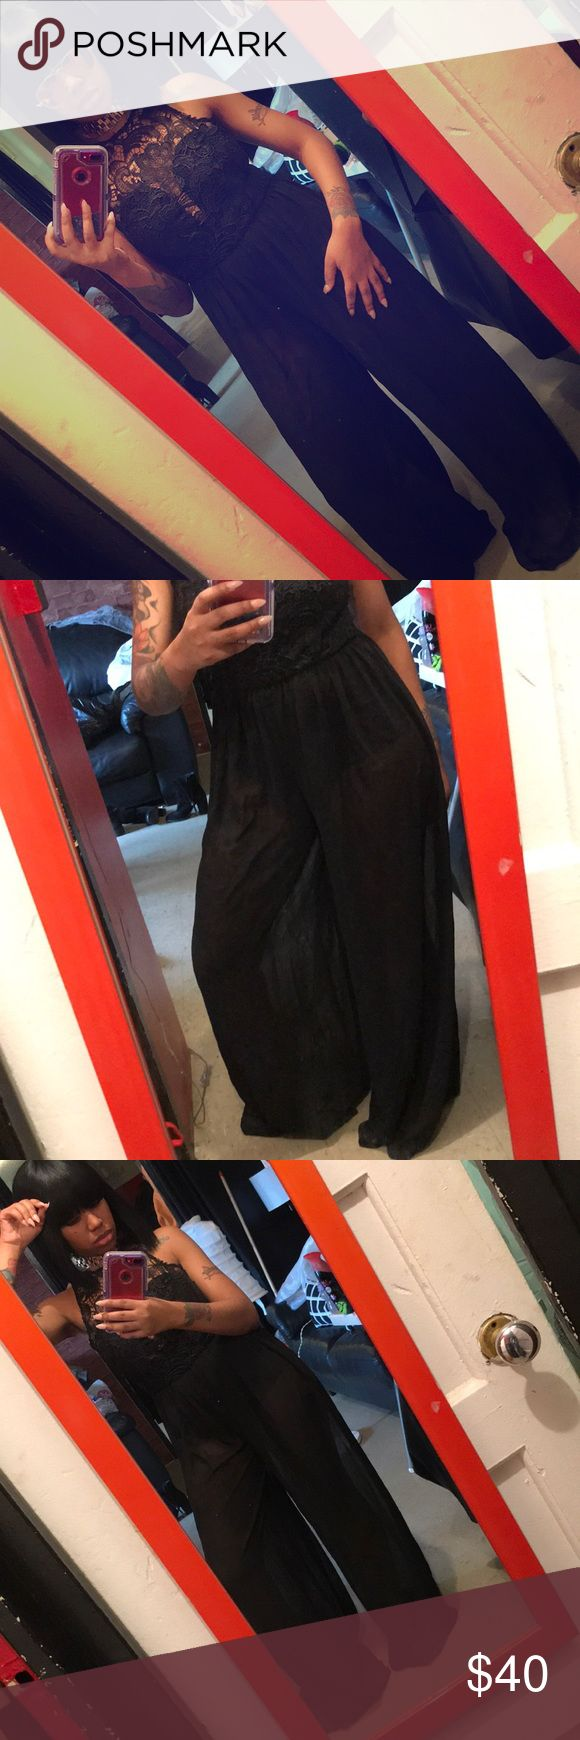 Small all black pants jumpsuit Worn once bottom need to be ironed great condition all black any occasion no rips in it size small Pants Jumpsuits & Rompers